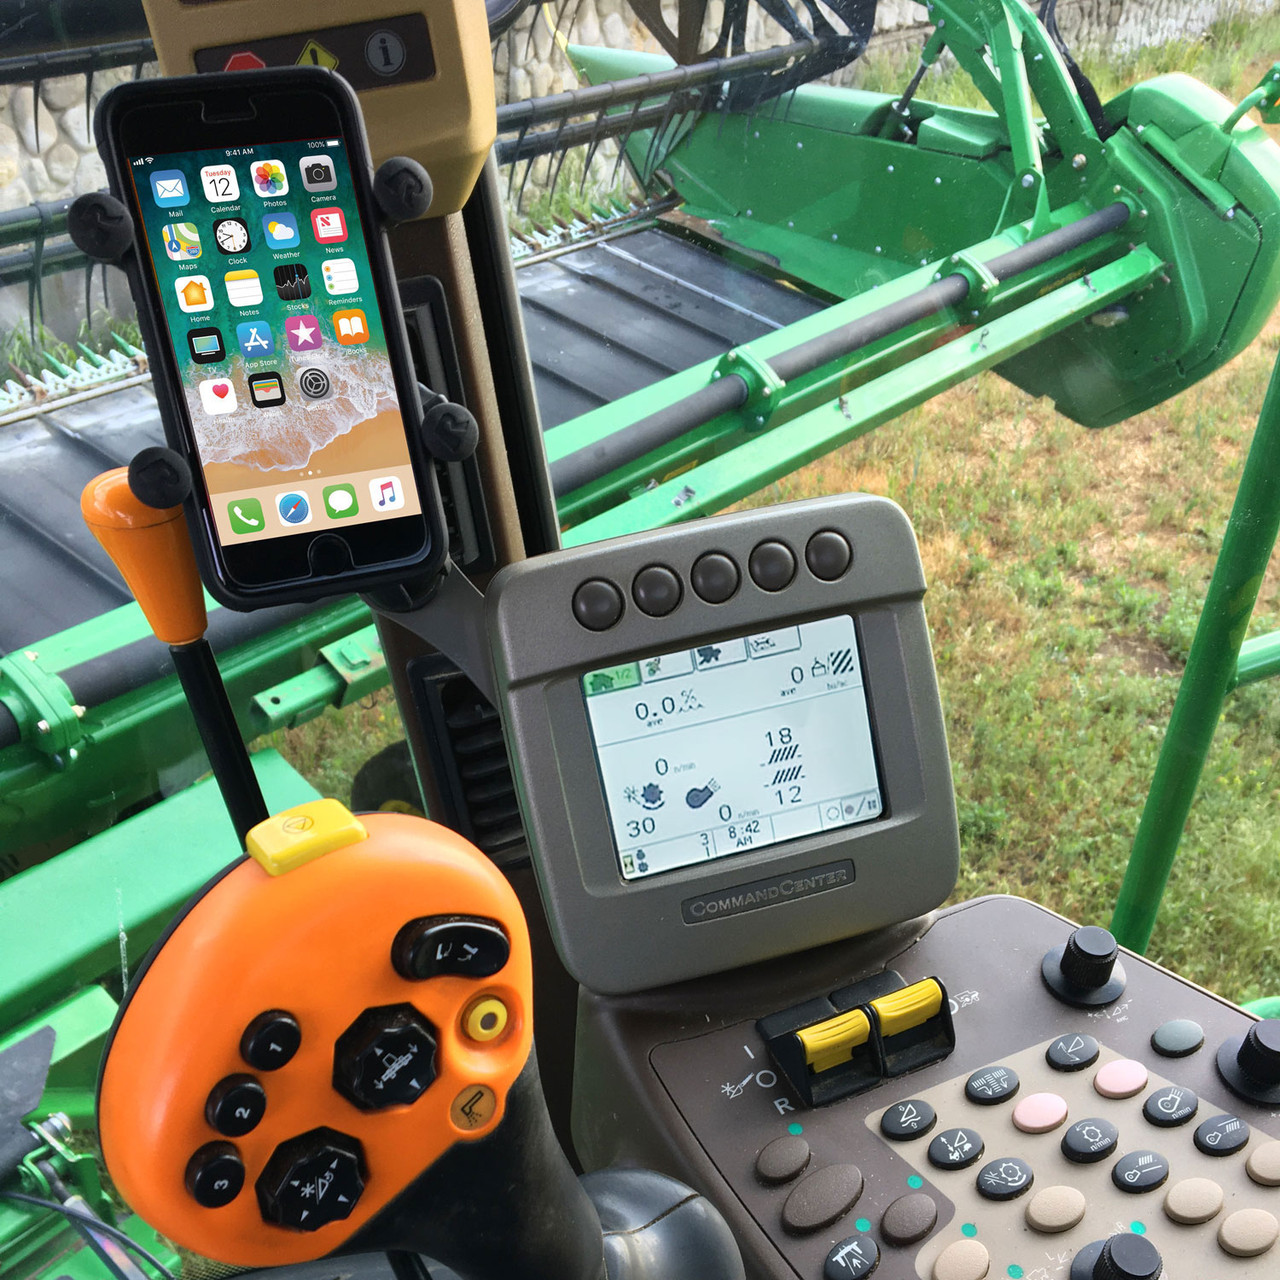 Sprayer or Tractor Easy to install Solid Phone holder for a John Deere Combine